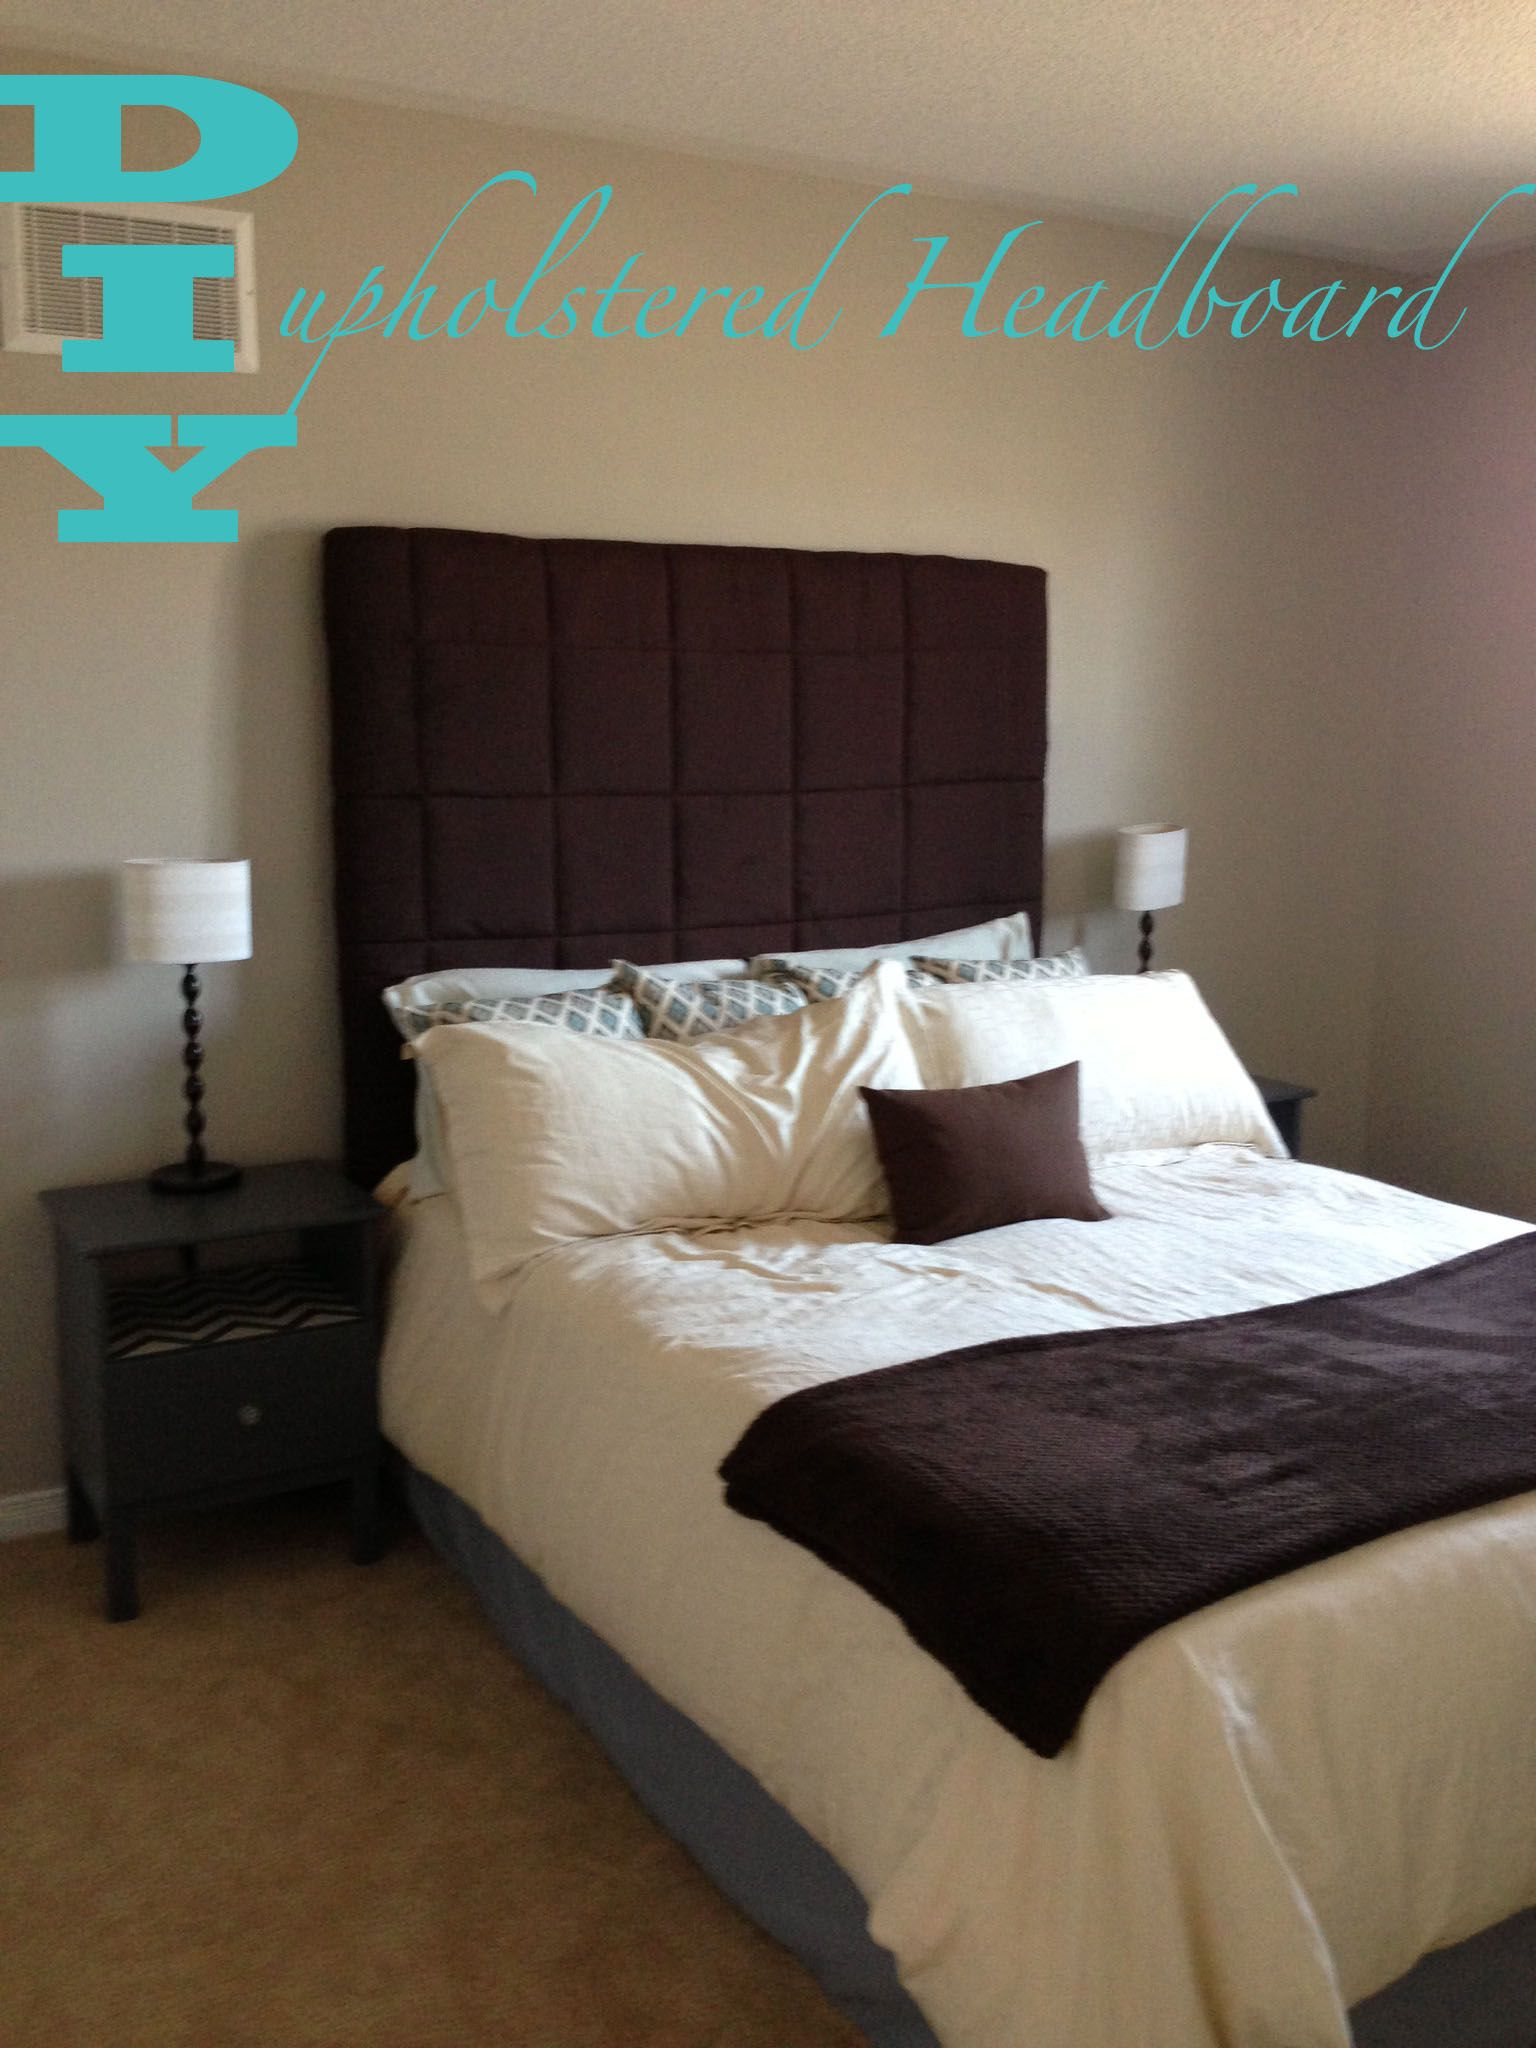 DIY Headboard- Quick and Easy Upholstered Headboard using a ...